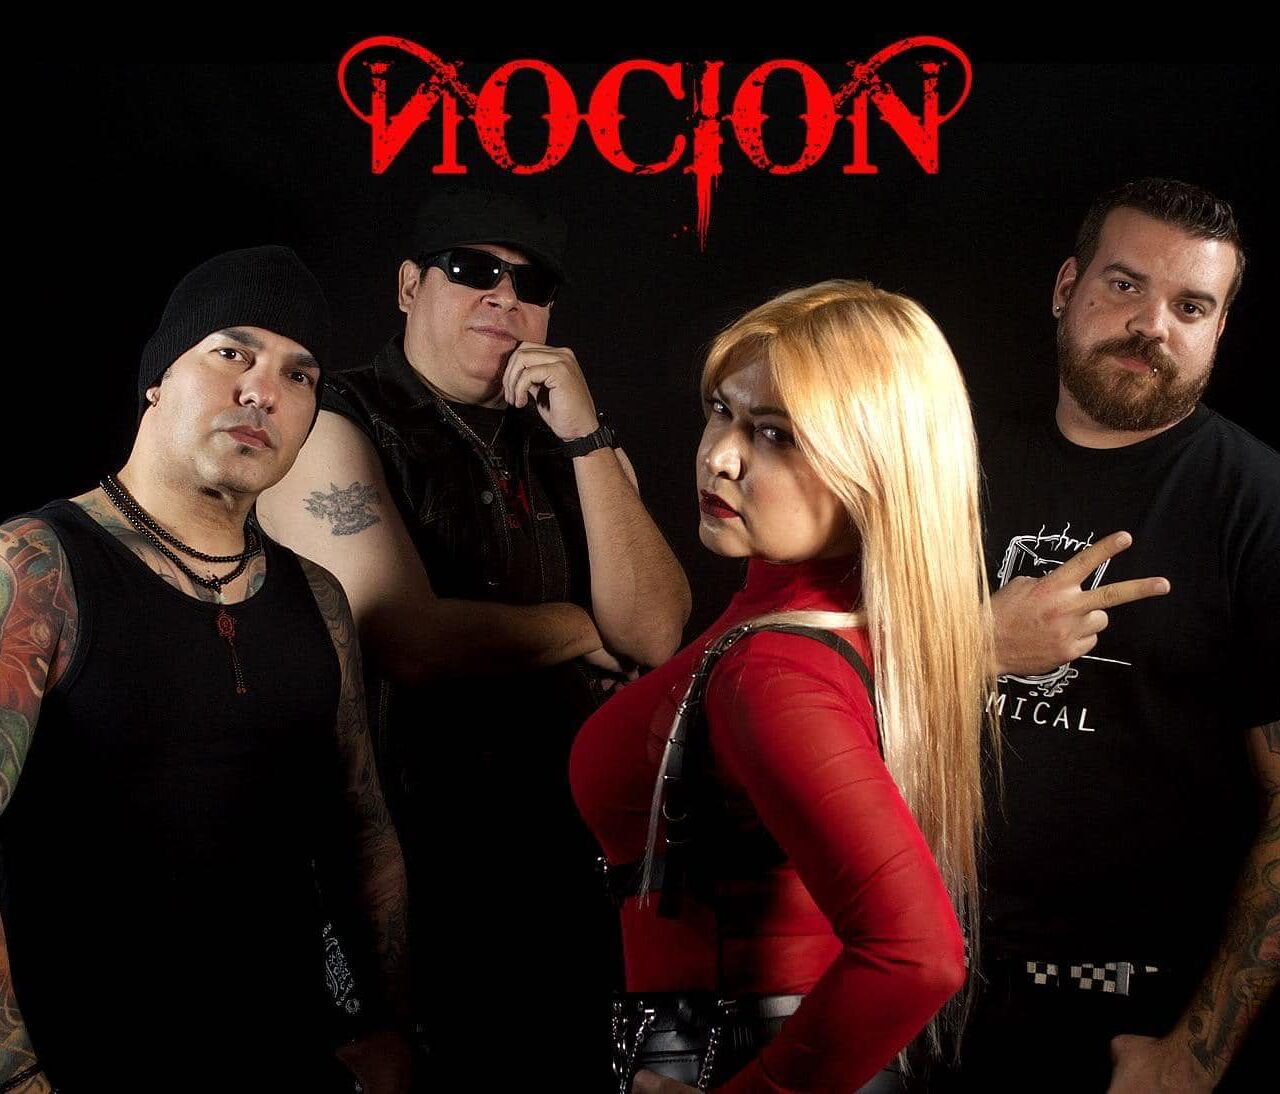 """Nocion """"The Grave"""" – A Look at the Lyrics"""